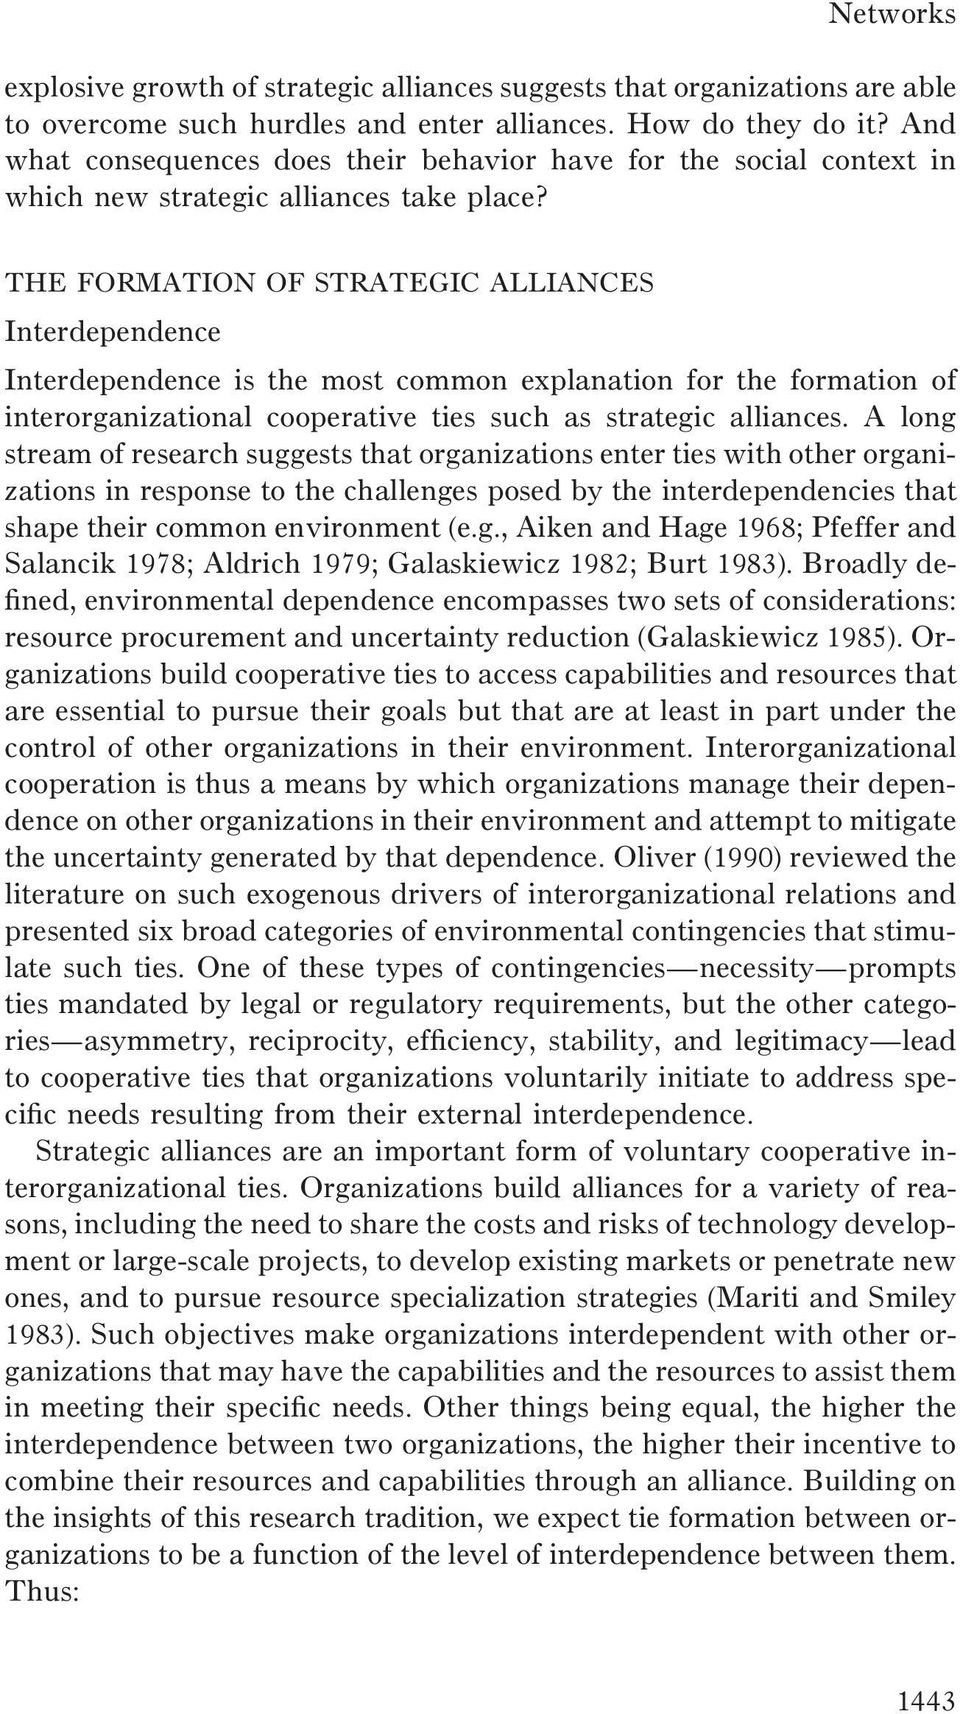 THE FORMATION OF STRATEGIC ALLIANCES Interdependence Interdependence is the most common explanation for the formation of interorganizational cooperative ties such as strategic alliances.